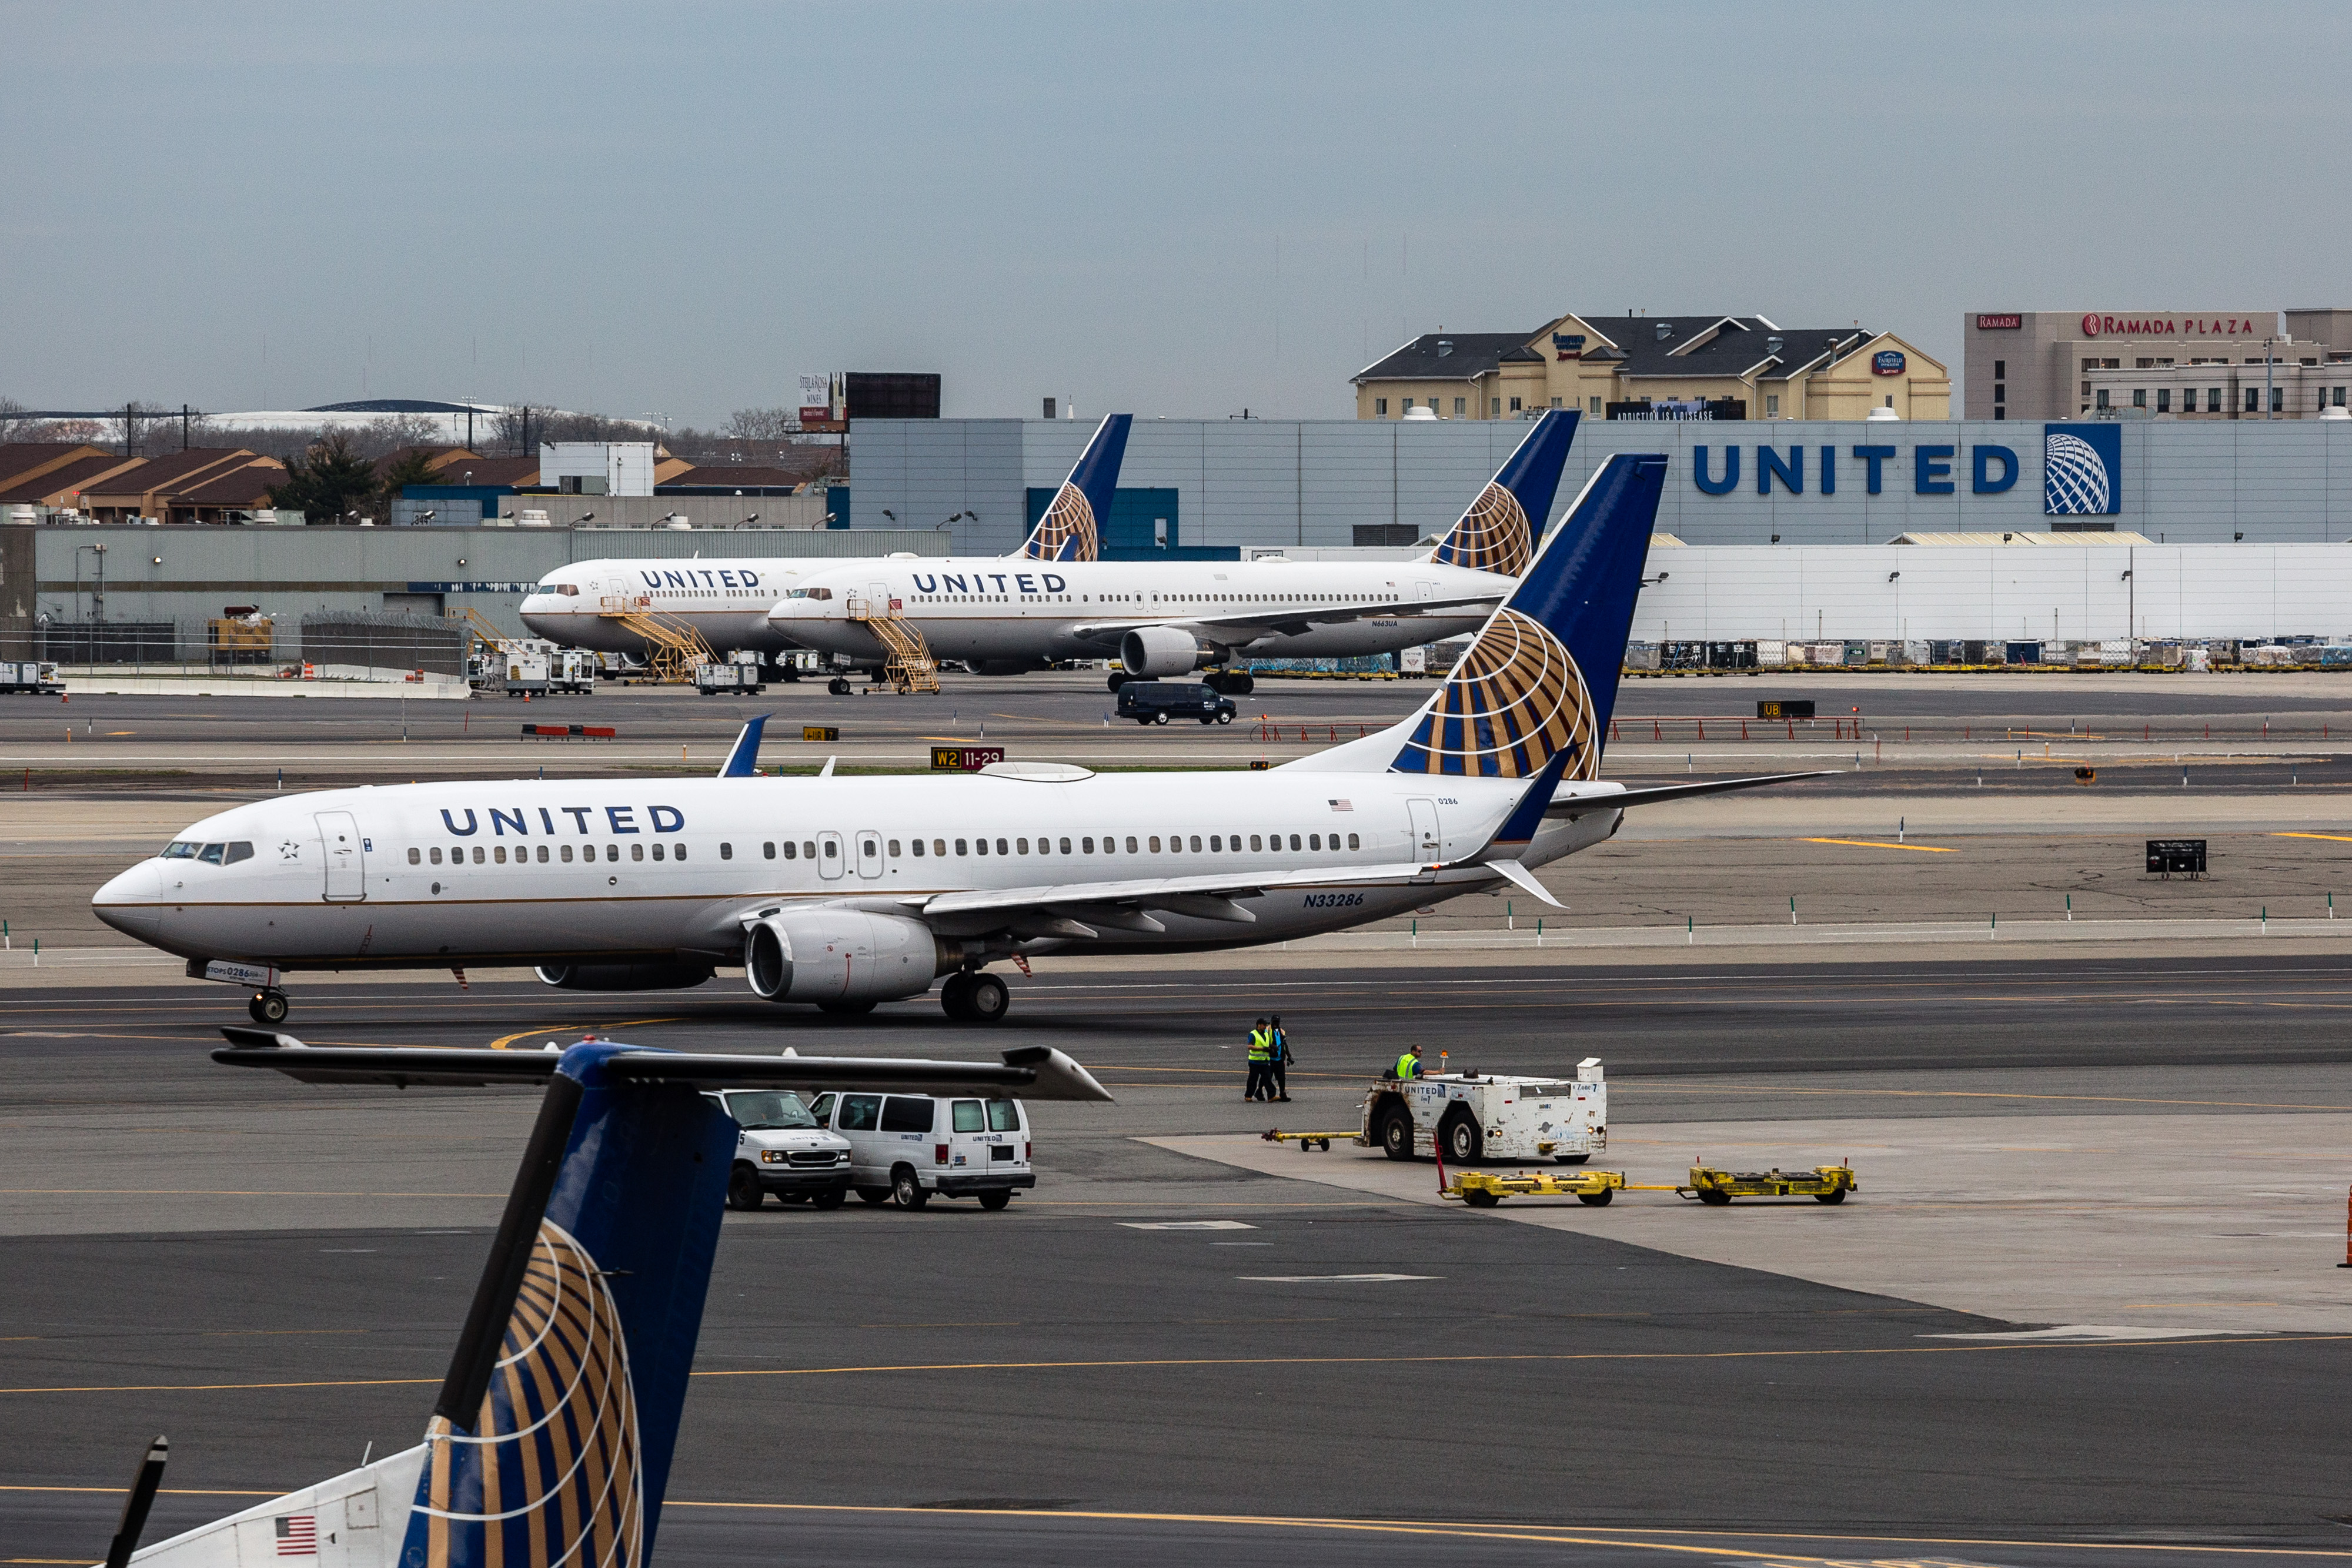 United airplanes outside the company's hangar at Newark Liberty International Airport (EWR) in Newark, New Jersey, on April  12, 2017.